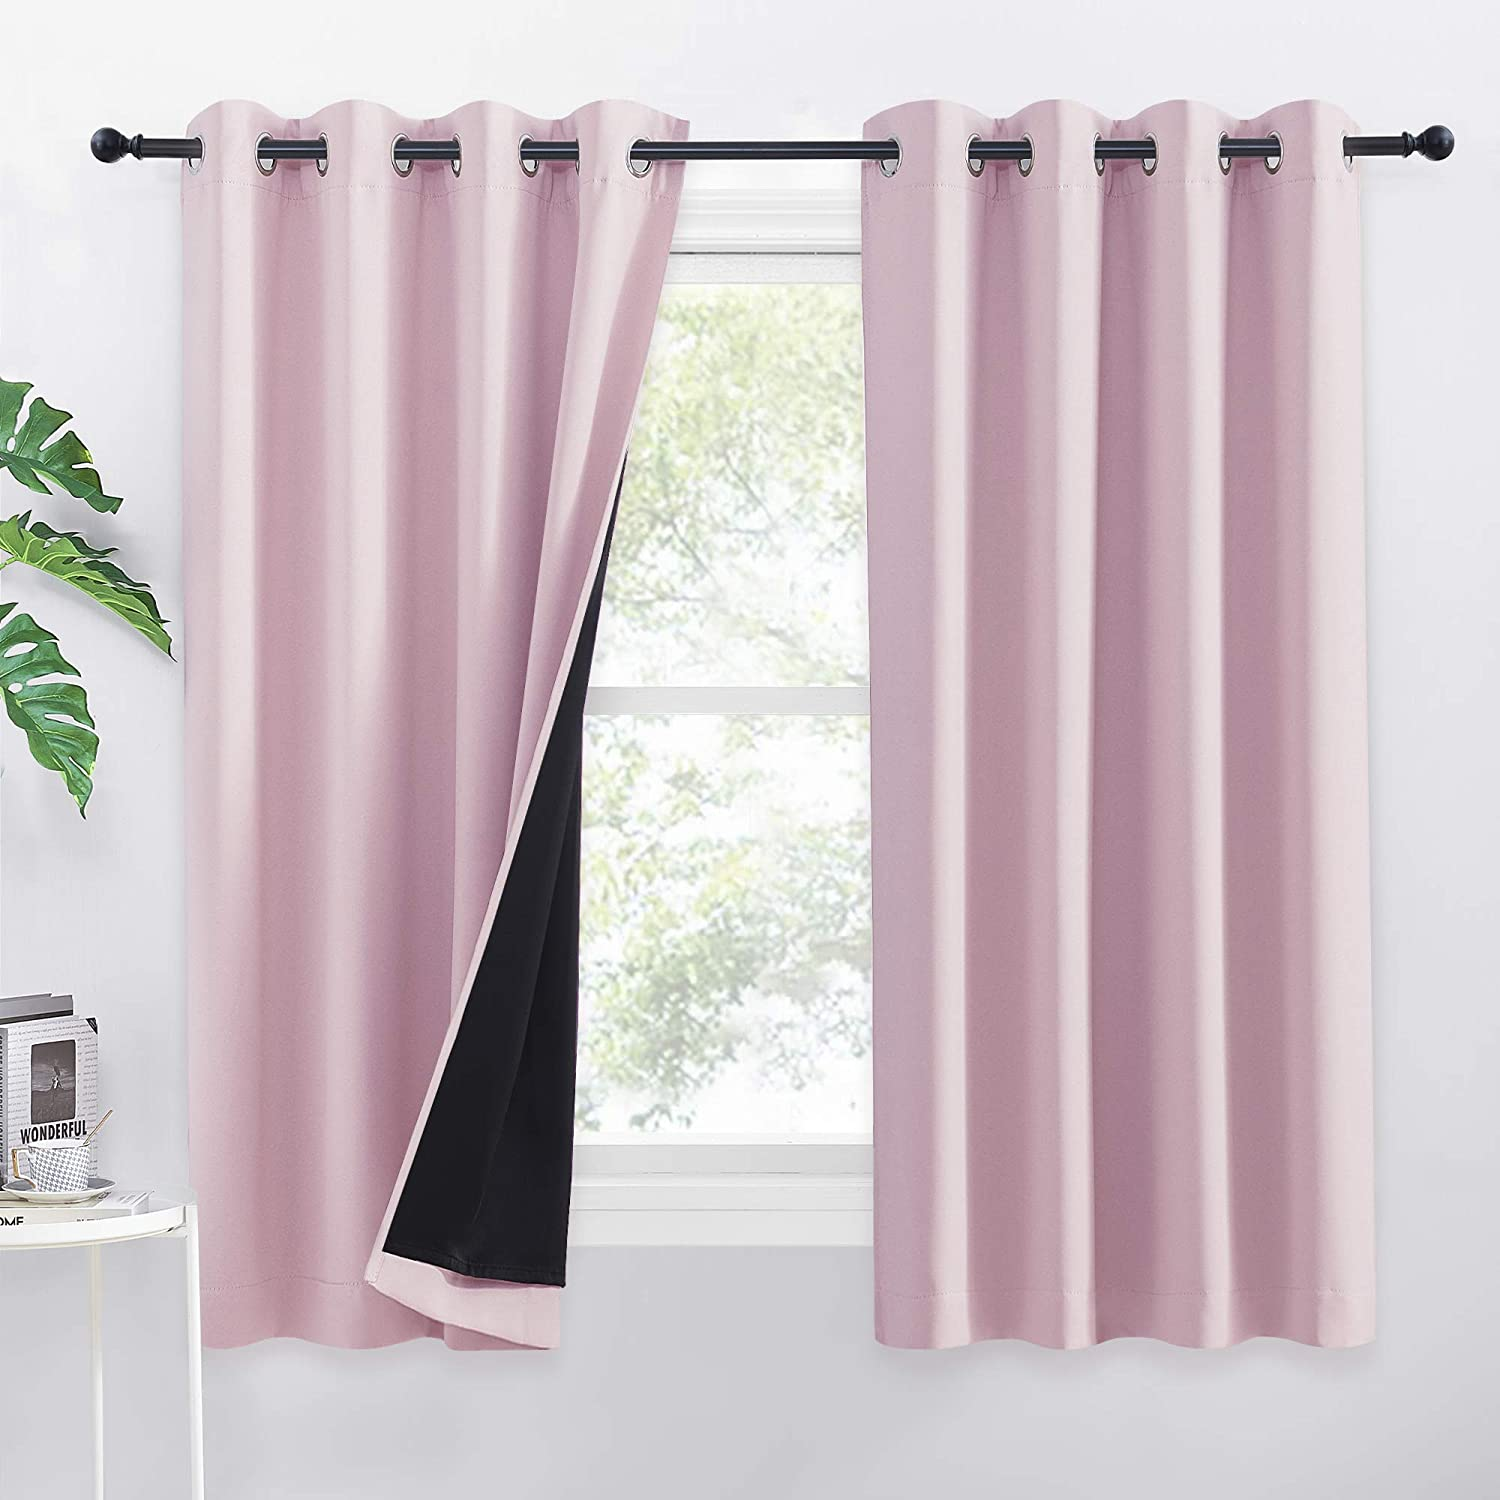 """PONY DANCE Kids Bedroom Curtains - Full 100% Blackout Curtains with Black Liner for Girls Thermal Sound Proof Blackout Panels for Nursery, 1 Pair, W 52"""" x D 63"""", Light Pink 2x W52"""" X L63"""" Light Pink"""